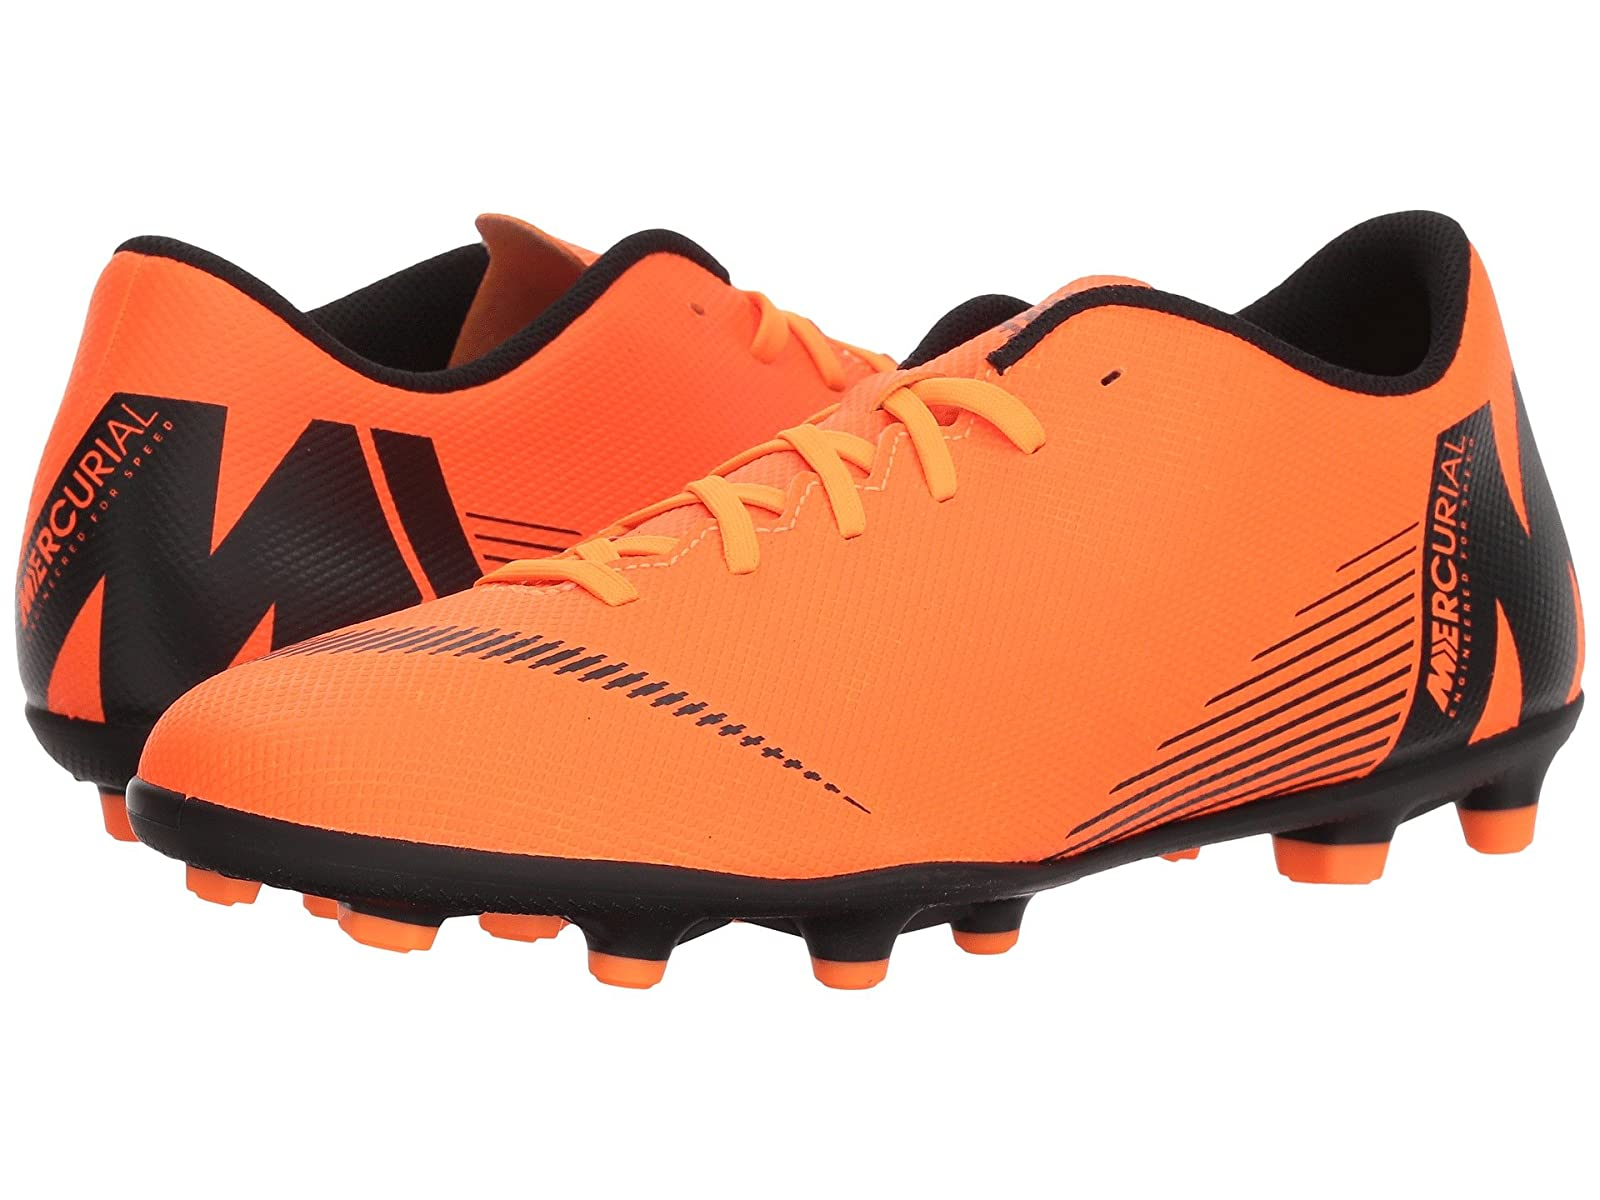 Nike Vapor 12 Club MGCheap and distinctive eye-catching shoes